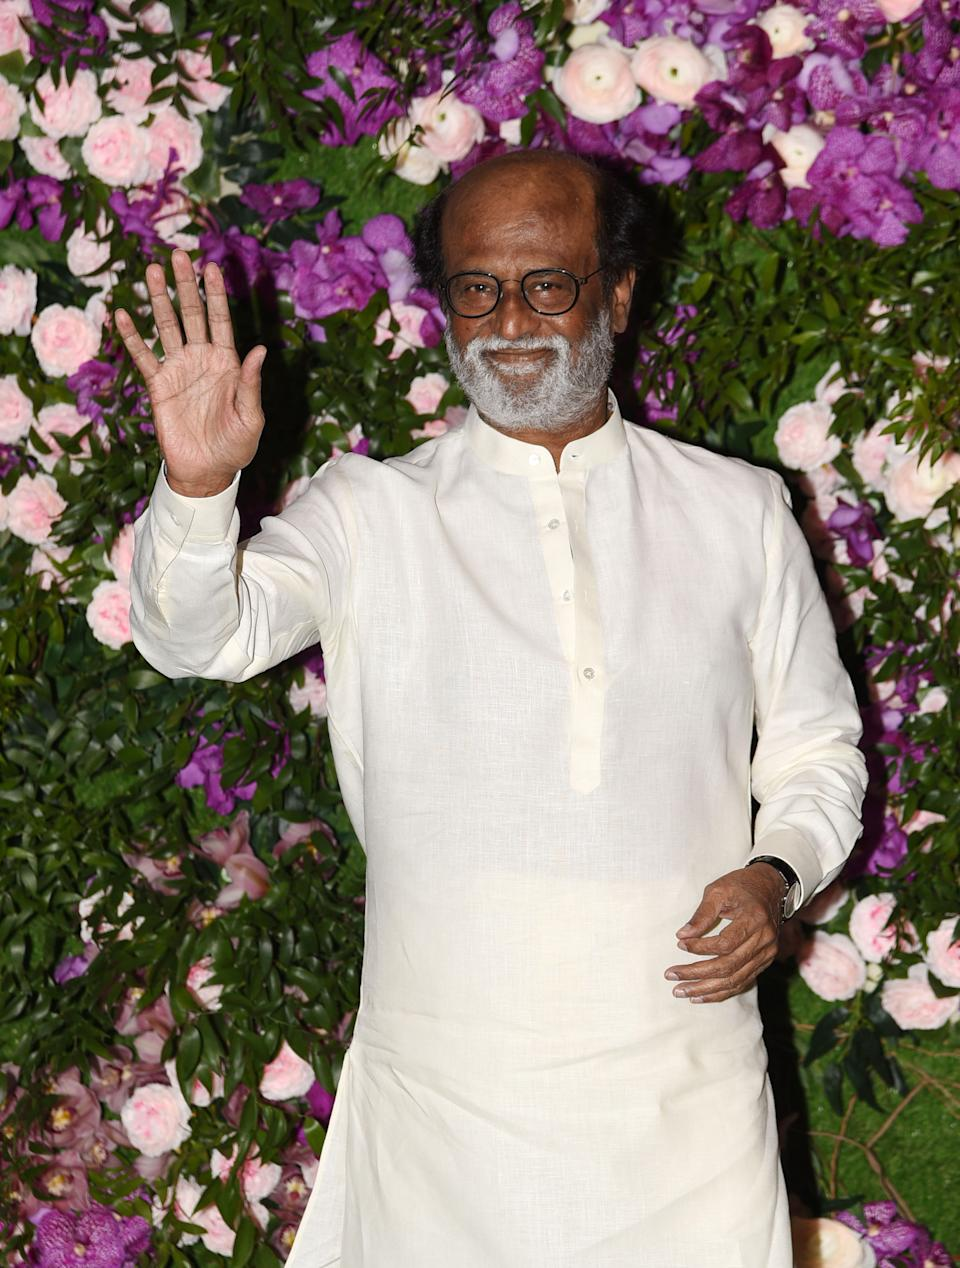 From being a bus conductor to a mass-frenzy-evoking superstar, Rajni's journey has been long, arduous and dramatic. As of now, even at 68, he is in big demand with actresses less than half his age vying for roles opposite him. The combined earnings of his 'Kaala', '2.0' and 'Petta', at the end of January 2019, was estimated to be over ₹1000 crore according to trade analysts.